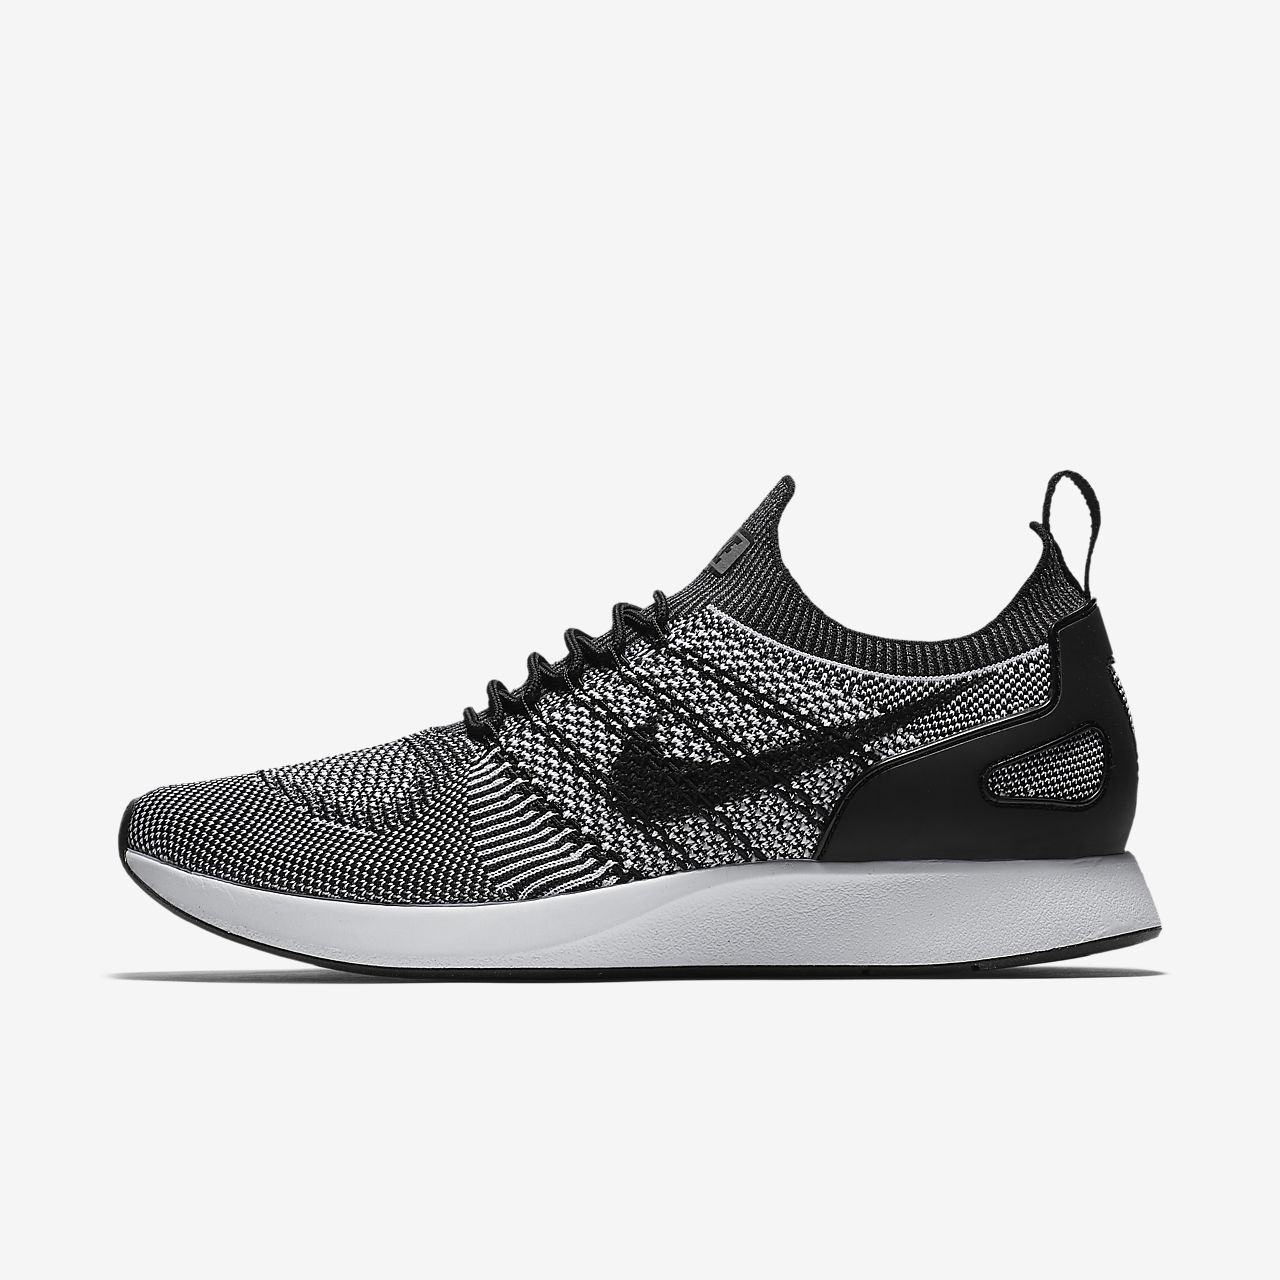 premium selection 4ef44 8d9bb ... Nike Air Zoom Mariah Flyknit Racer Mens Shoe